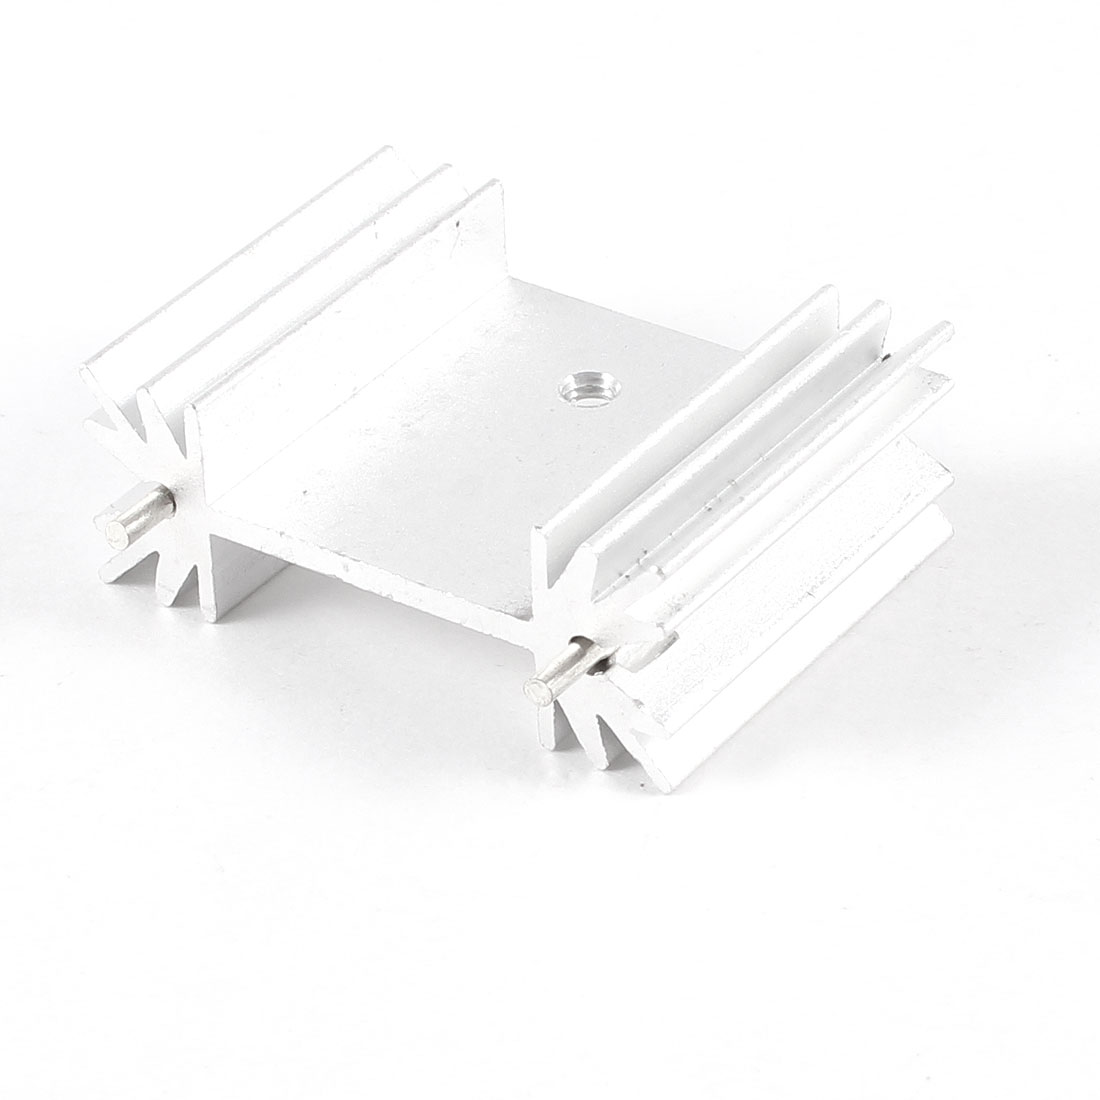 34mm x 25mm x 13mm Aluminium Heatsink Radiating Cooler Cooling Fin